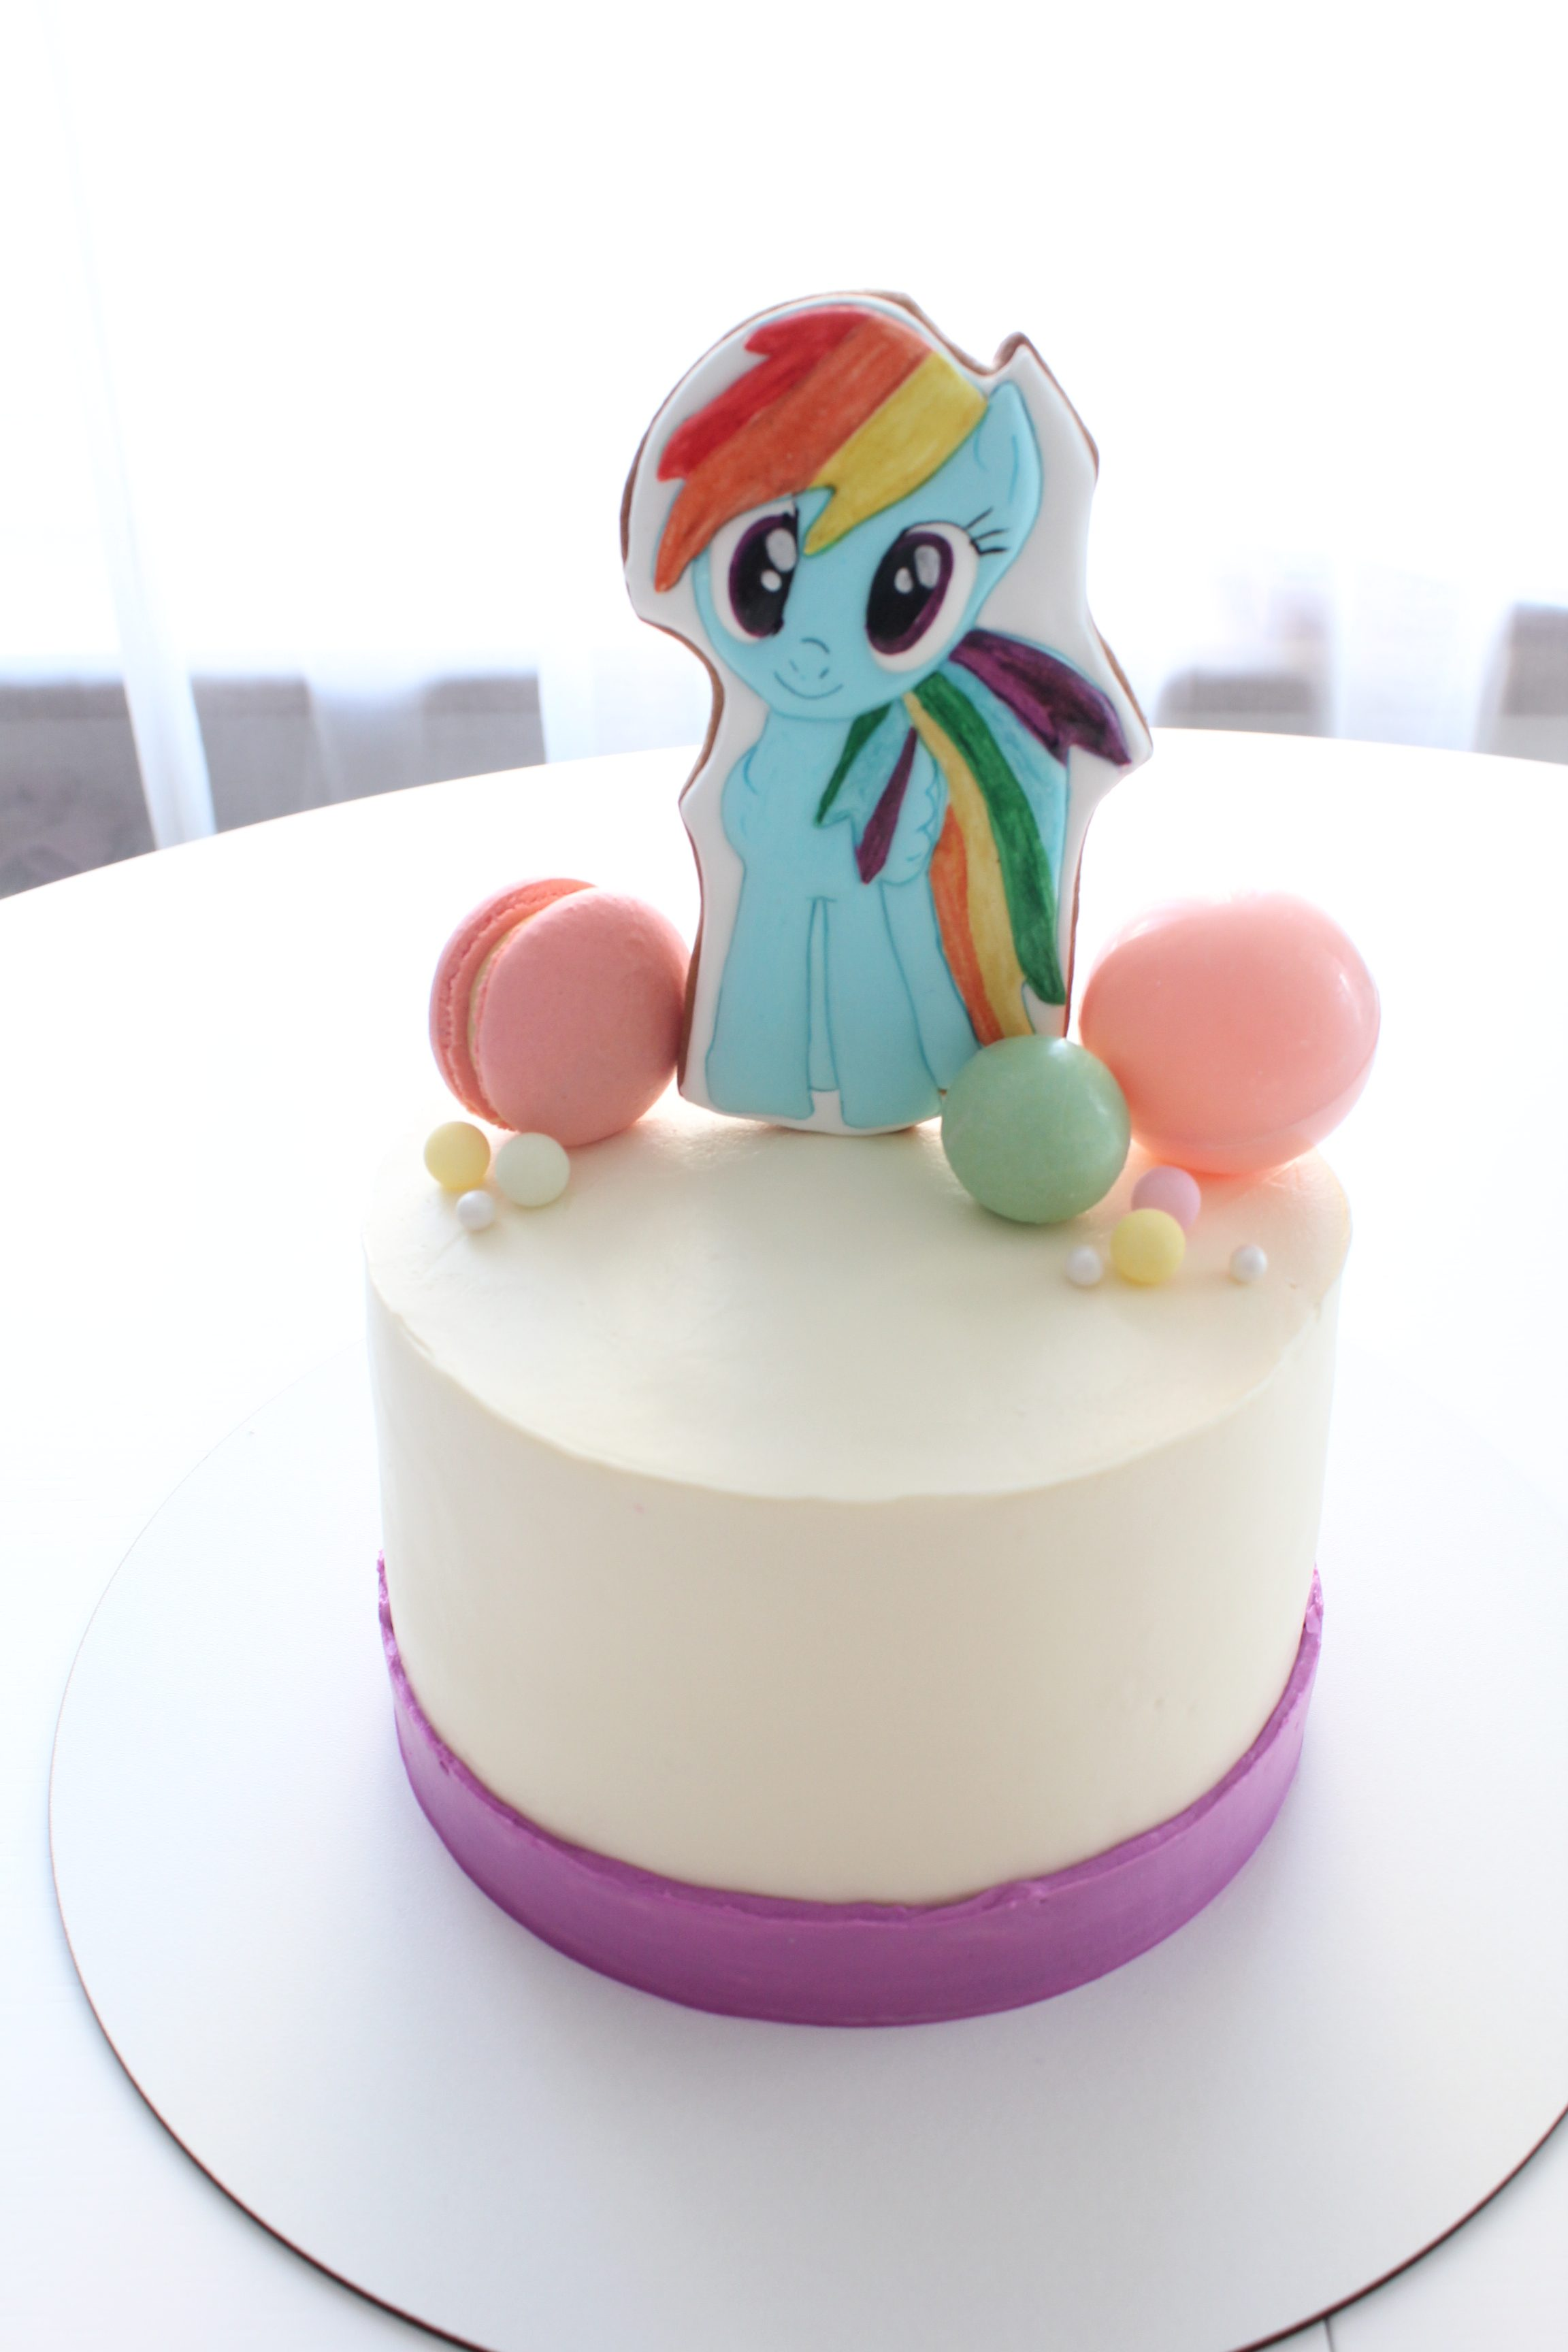 My Little Pony cake hero present for girl